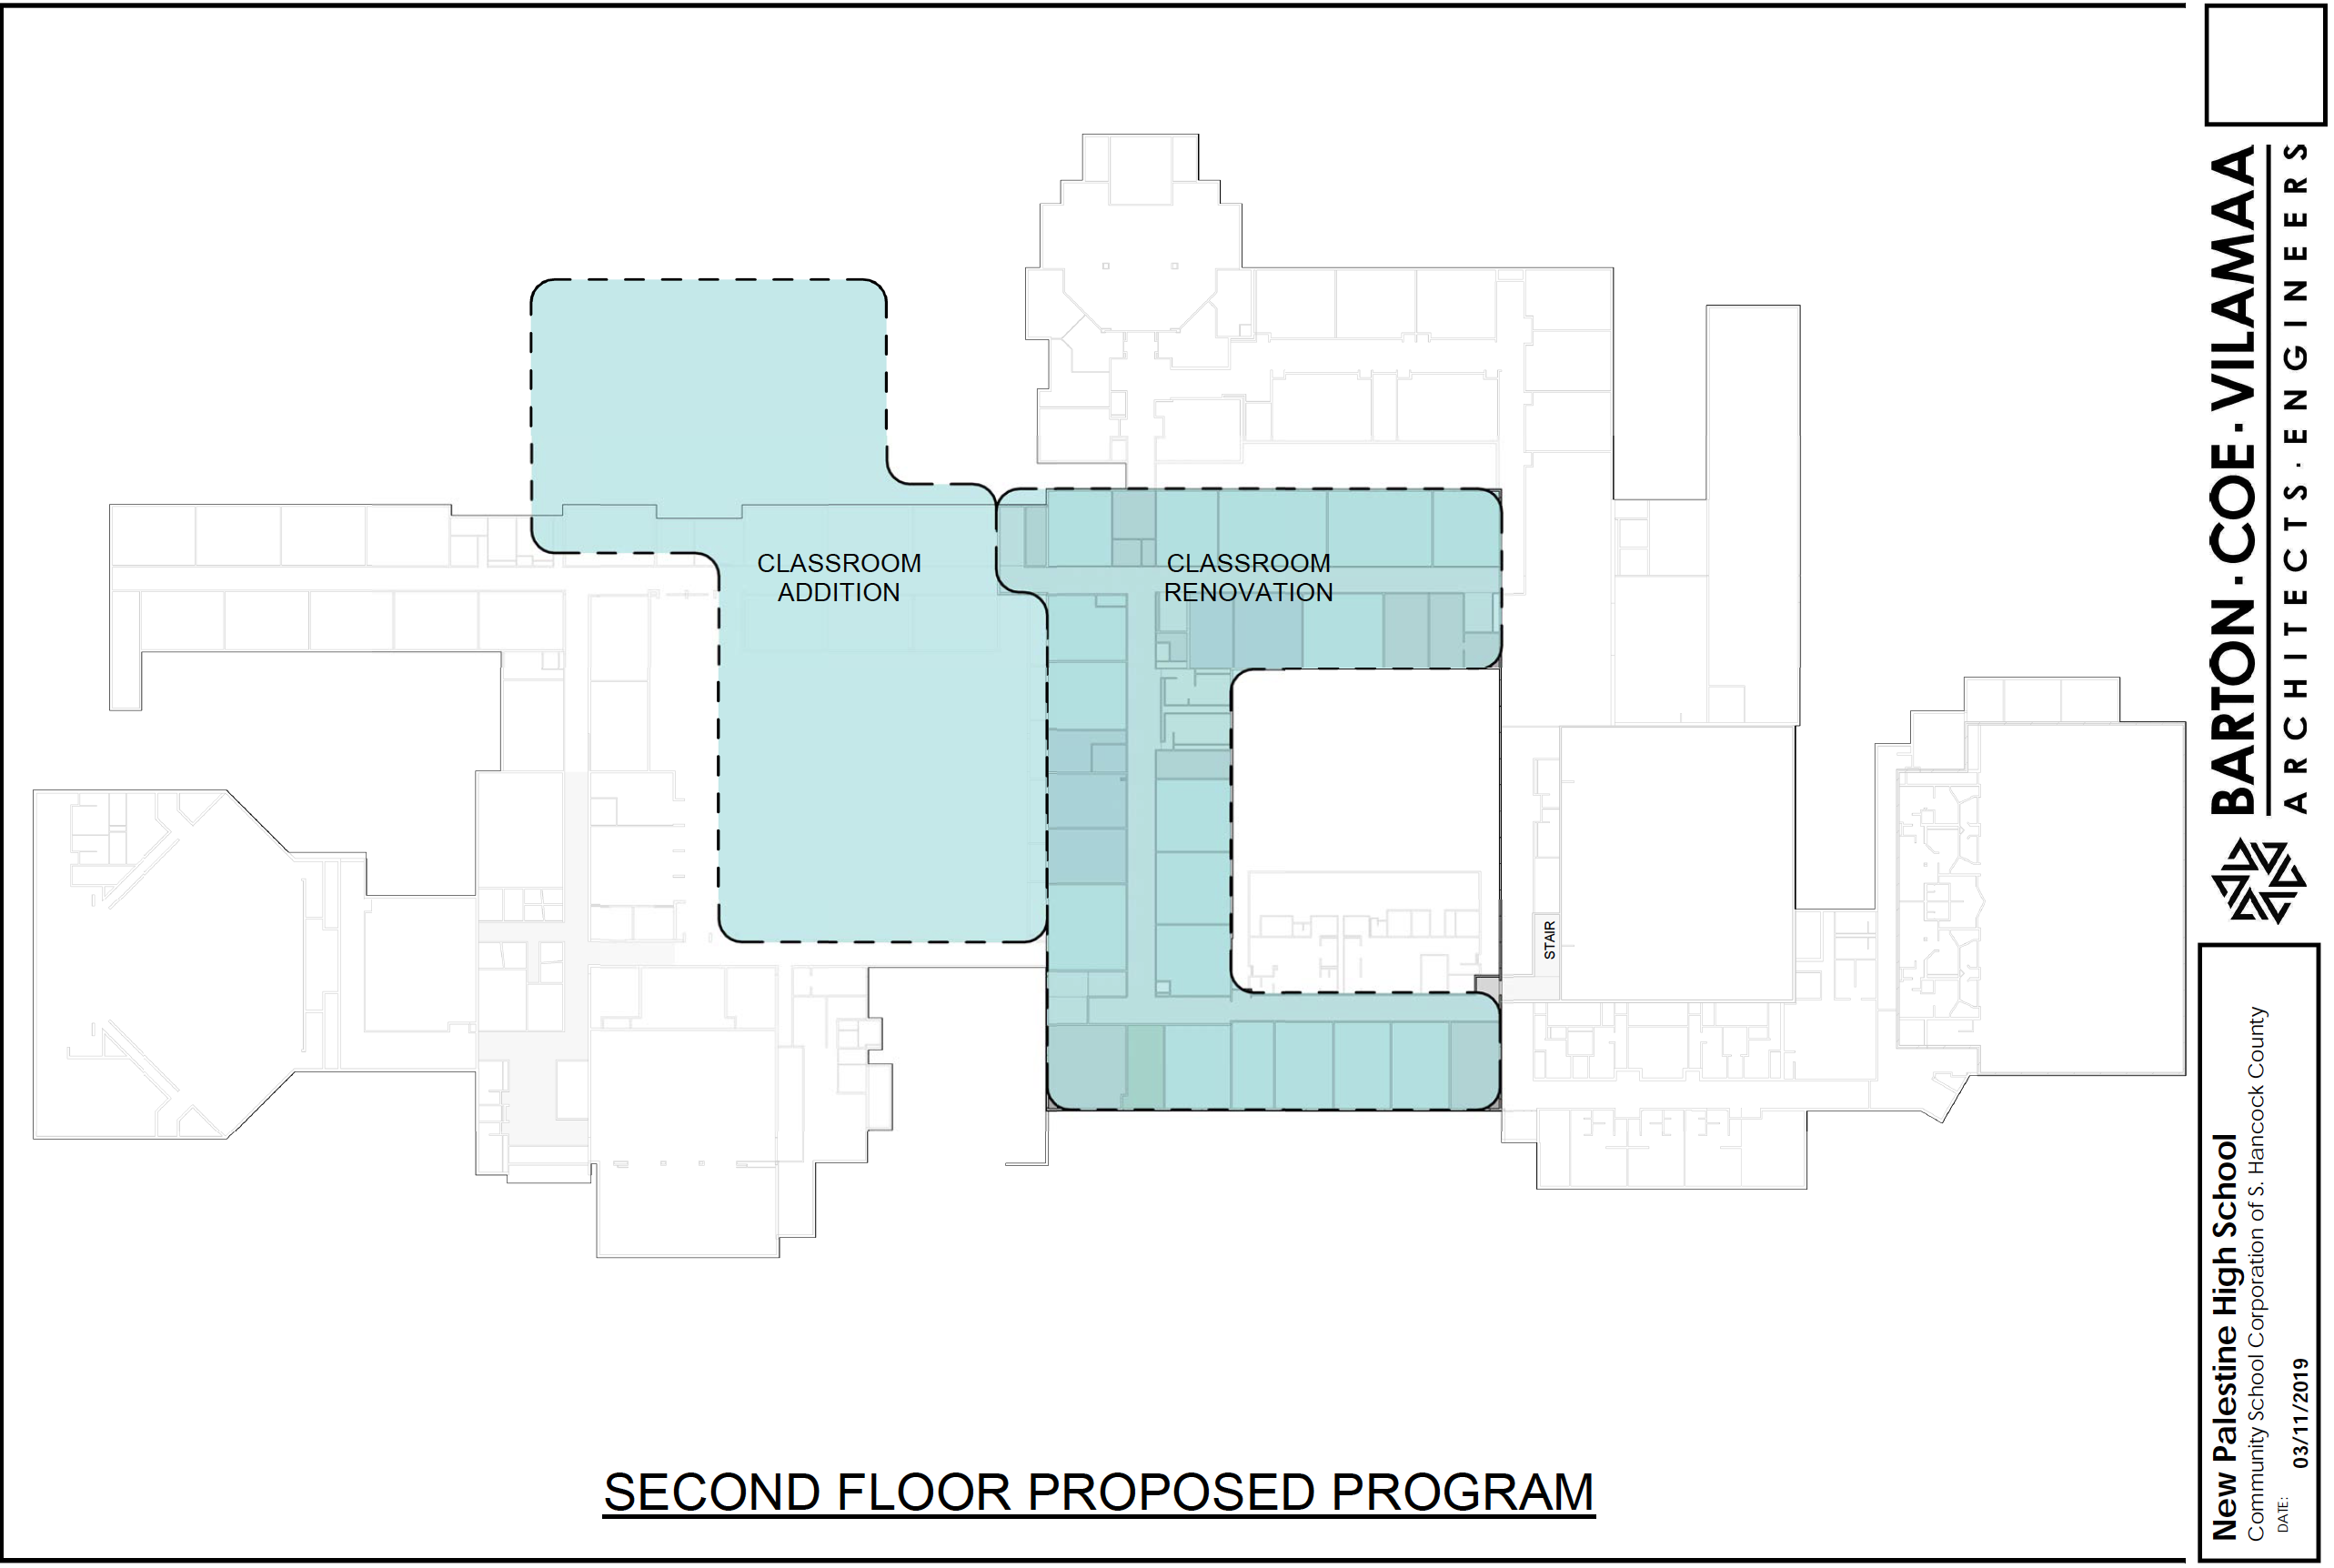 Concept of NPHS Renovation Project - Second Floor